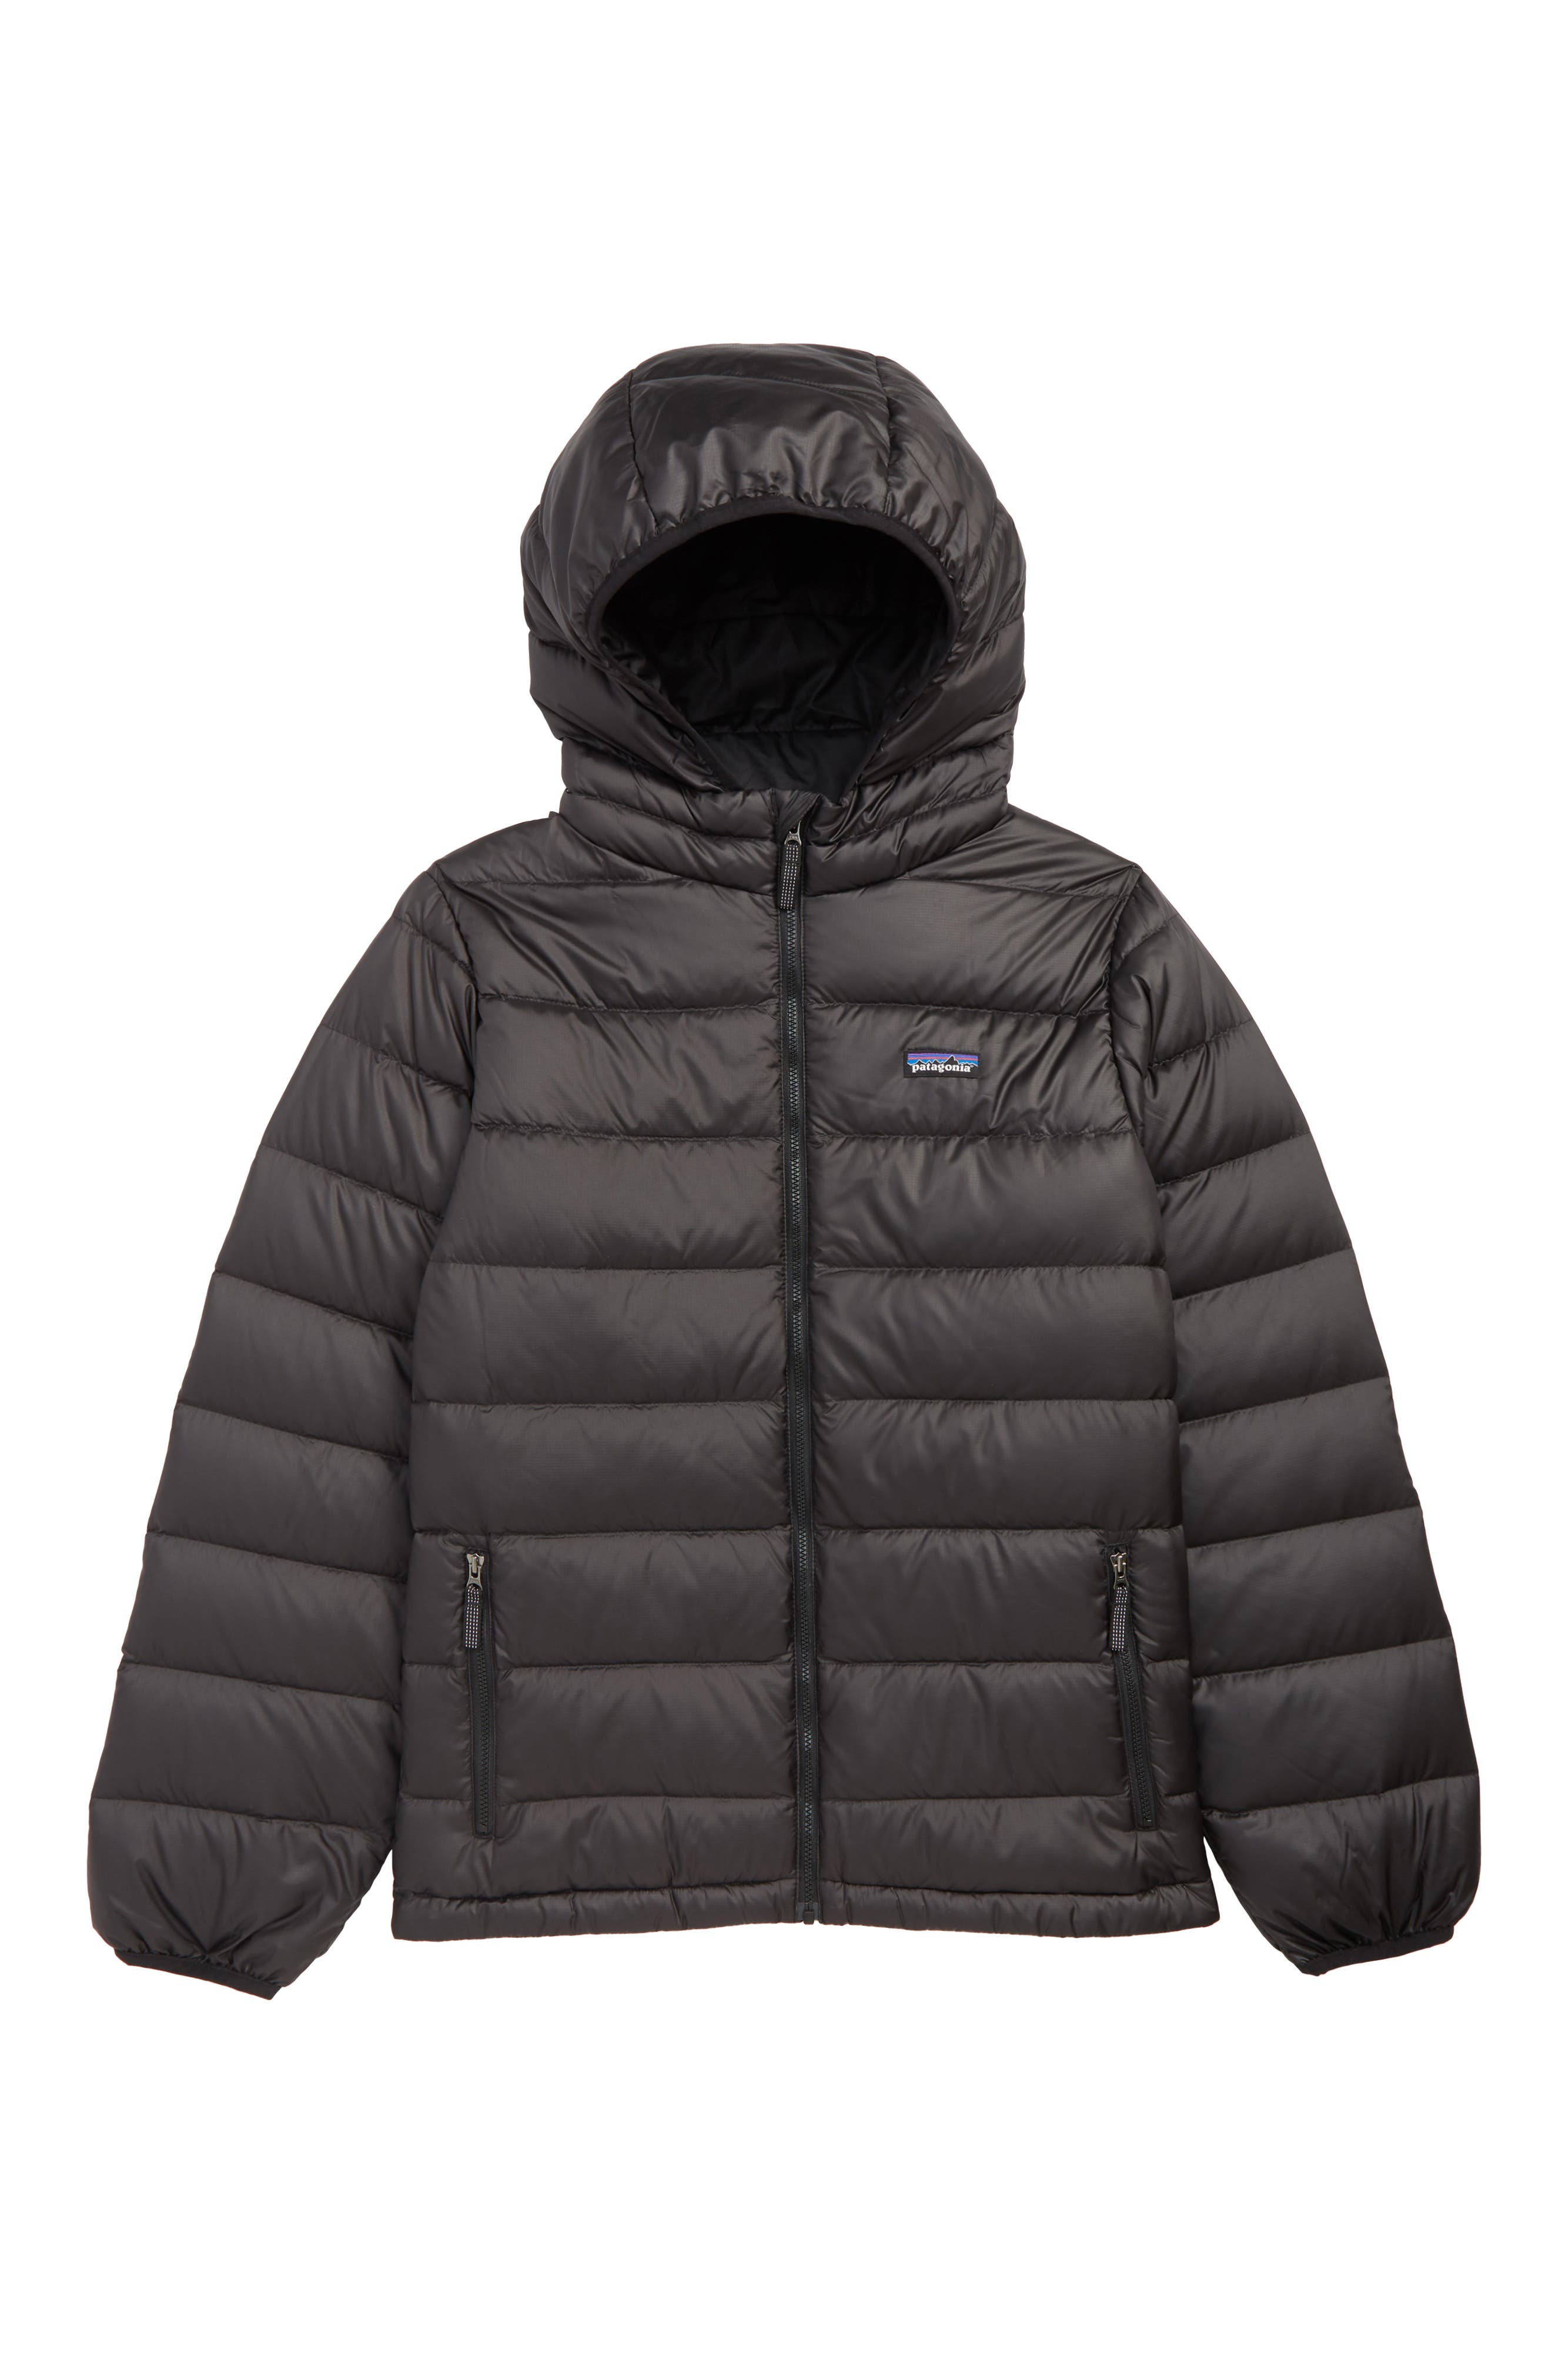 PATAGONIA, Hooded Down Jacket, Main thumbnail 1, color, 001